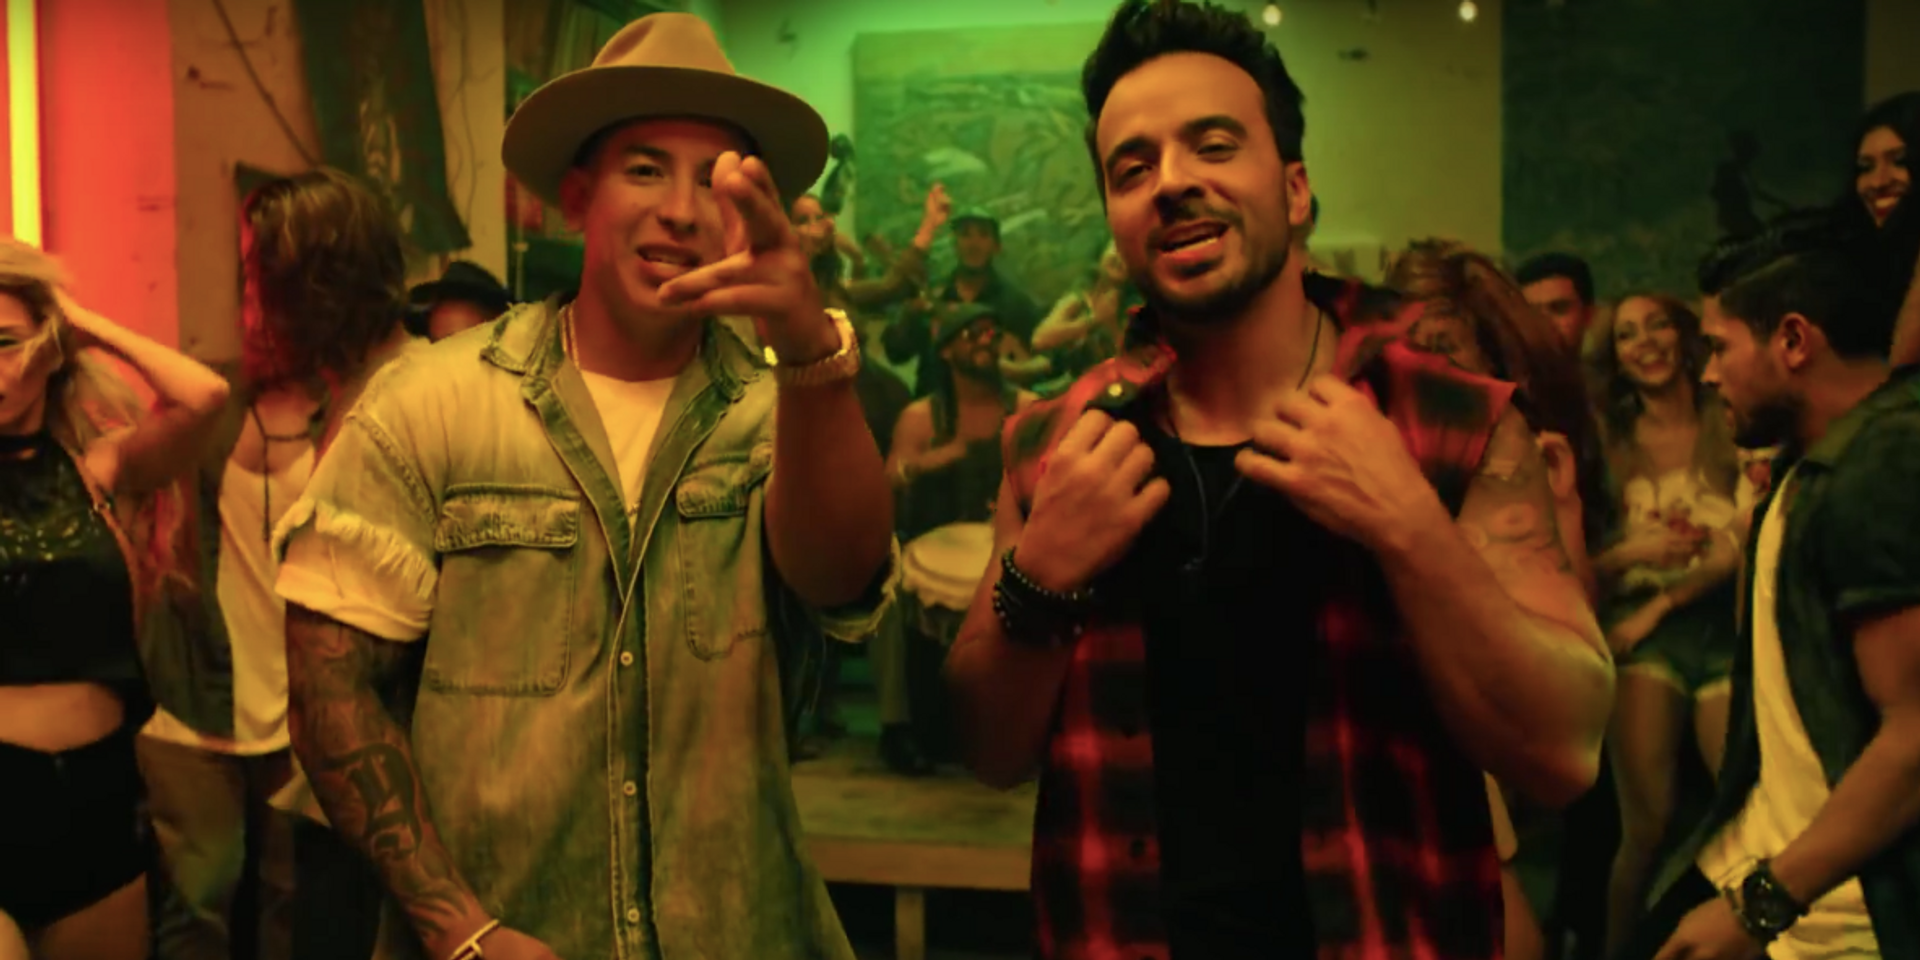 'Despacito' music video briefly removed from YouTube by hackers